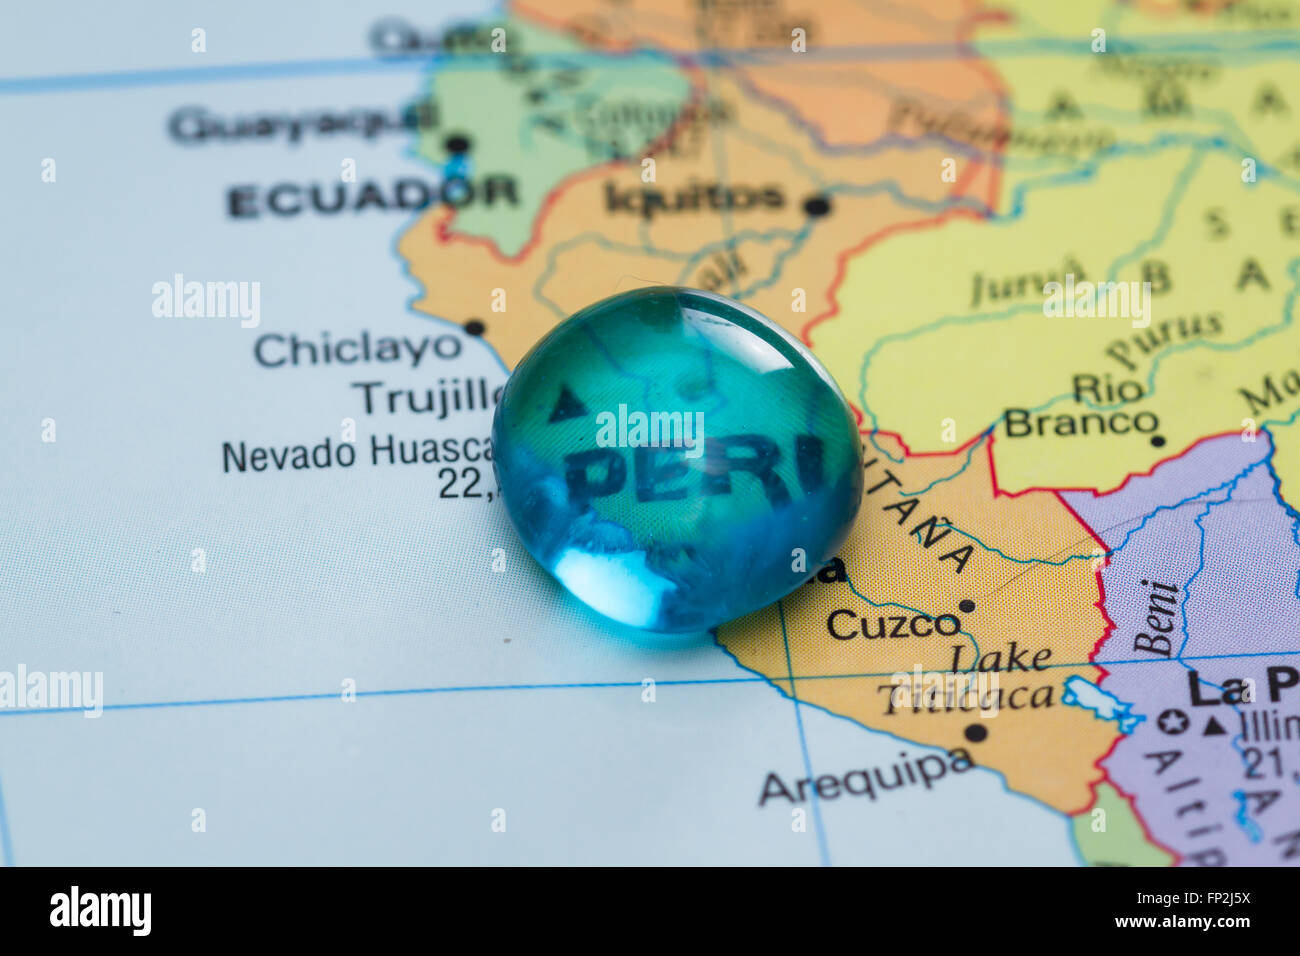 Peru On The World Map.Close Up Of A World Map With The Word Peru In Focus Stock Photo